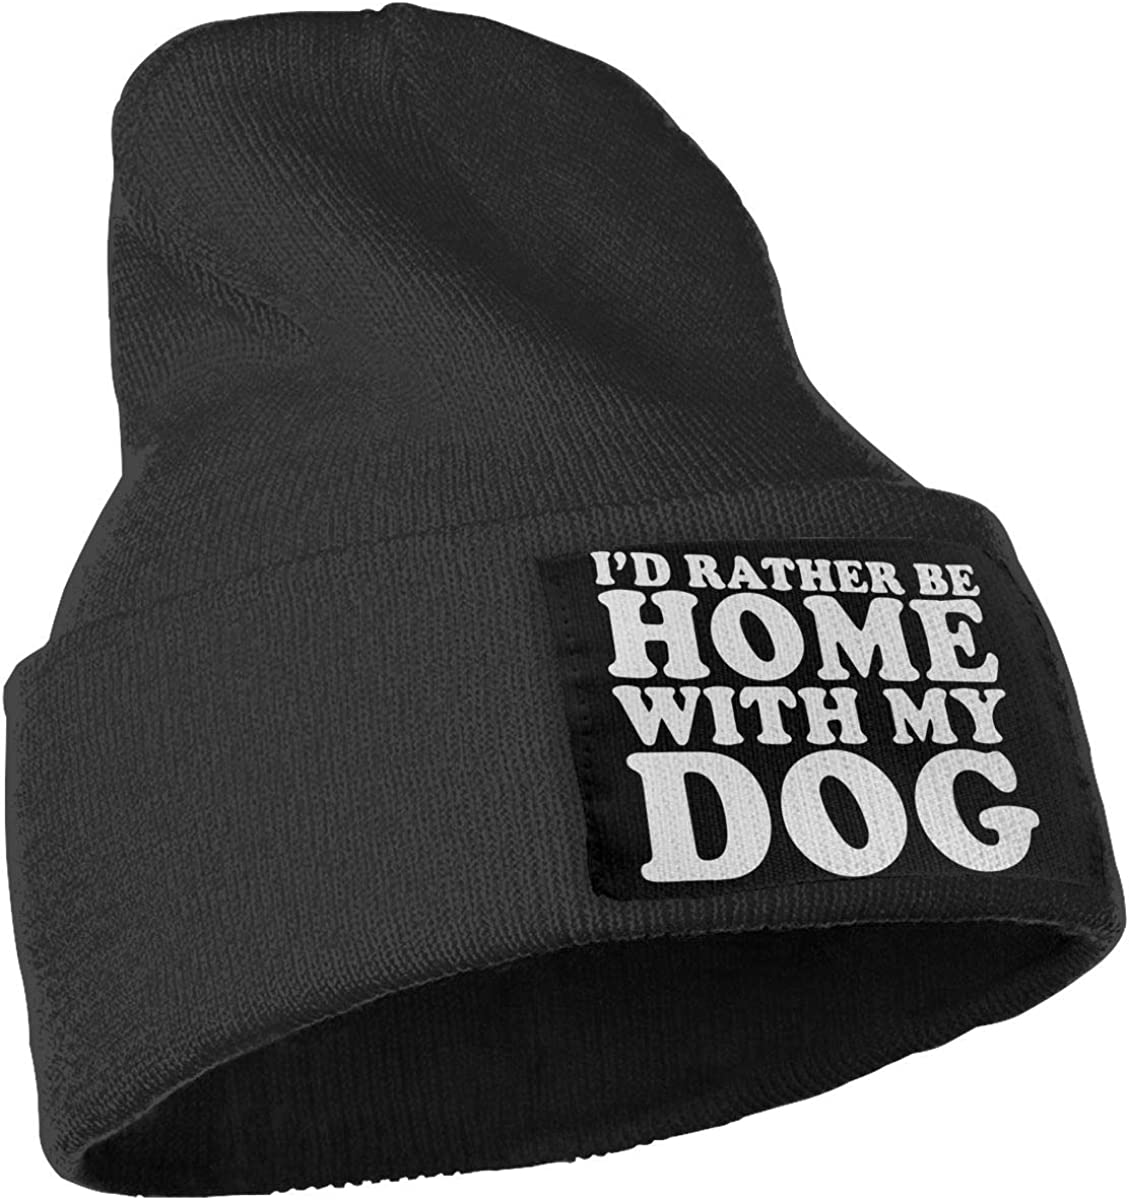 Ydbve81-G Unisex 100/% Acrylic Knit Hat Cap Id Rather Be Home with My Dog Soft Beanie Hat